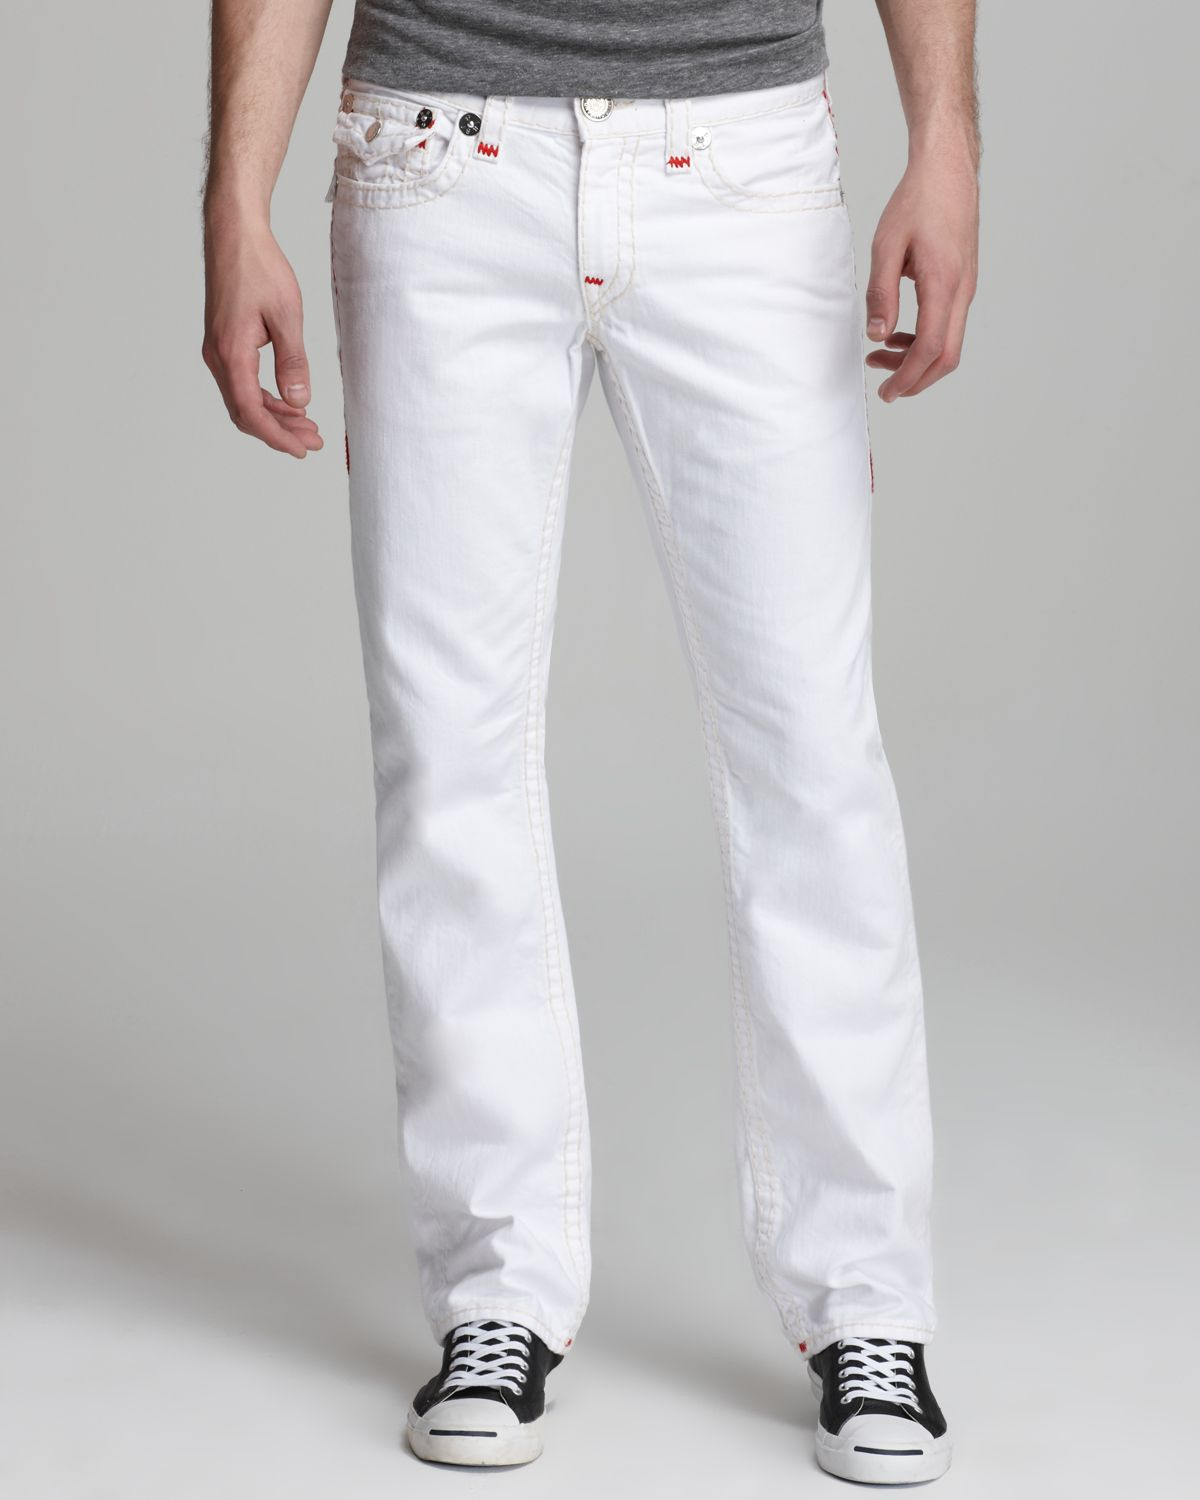 6930544aadb Lyst - True Religion Jeans Ricky Super T Straight Fit in Optic White ...